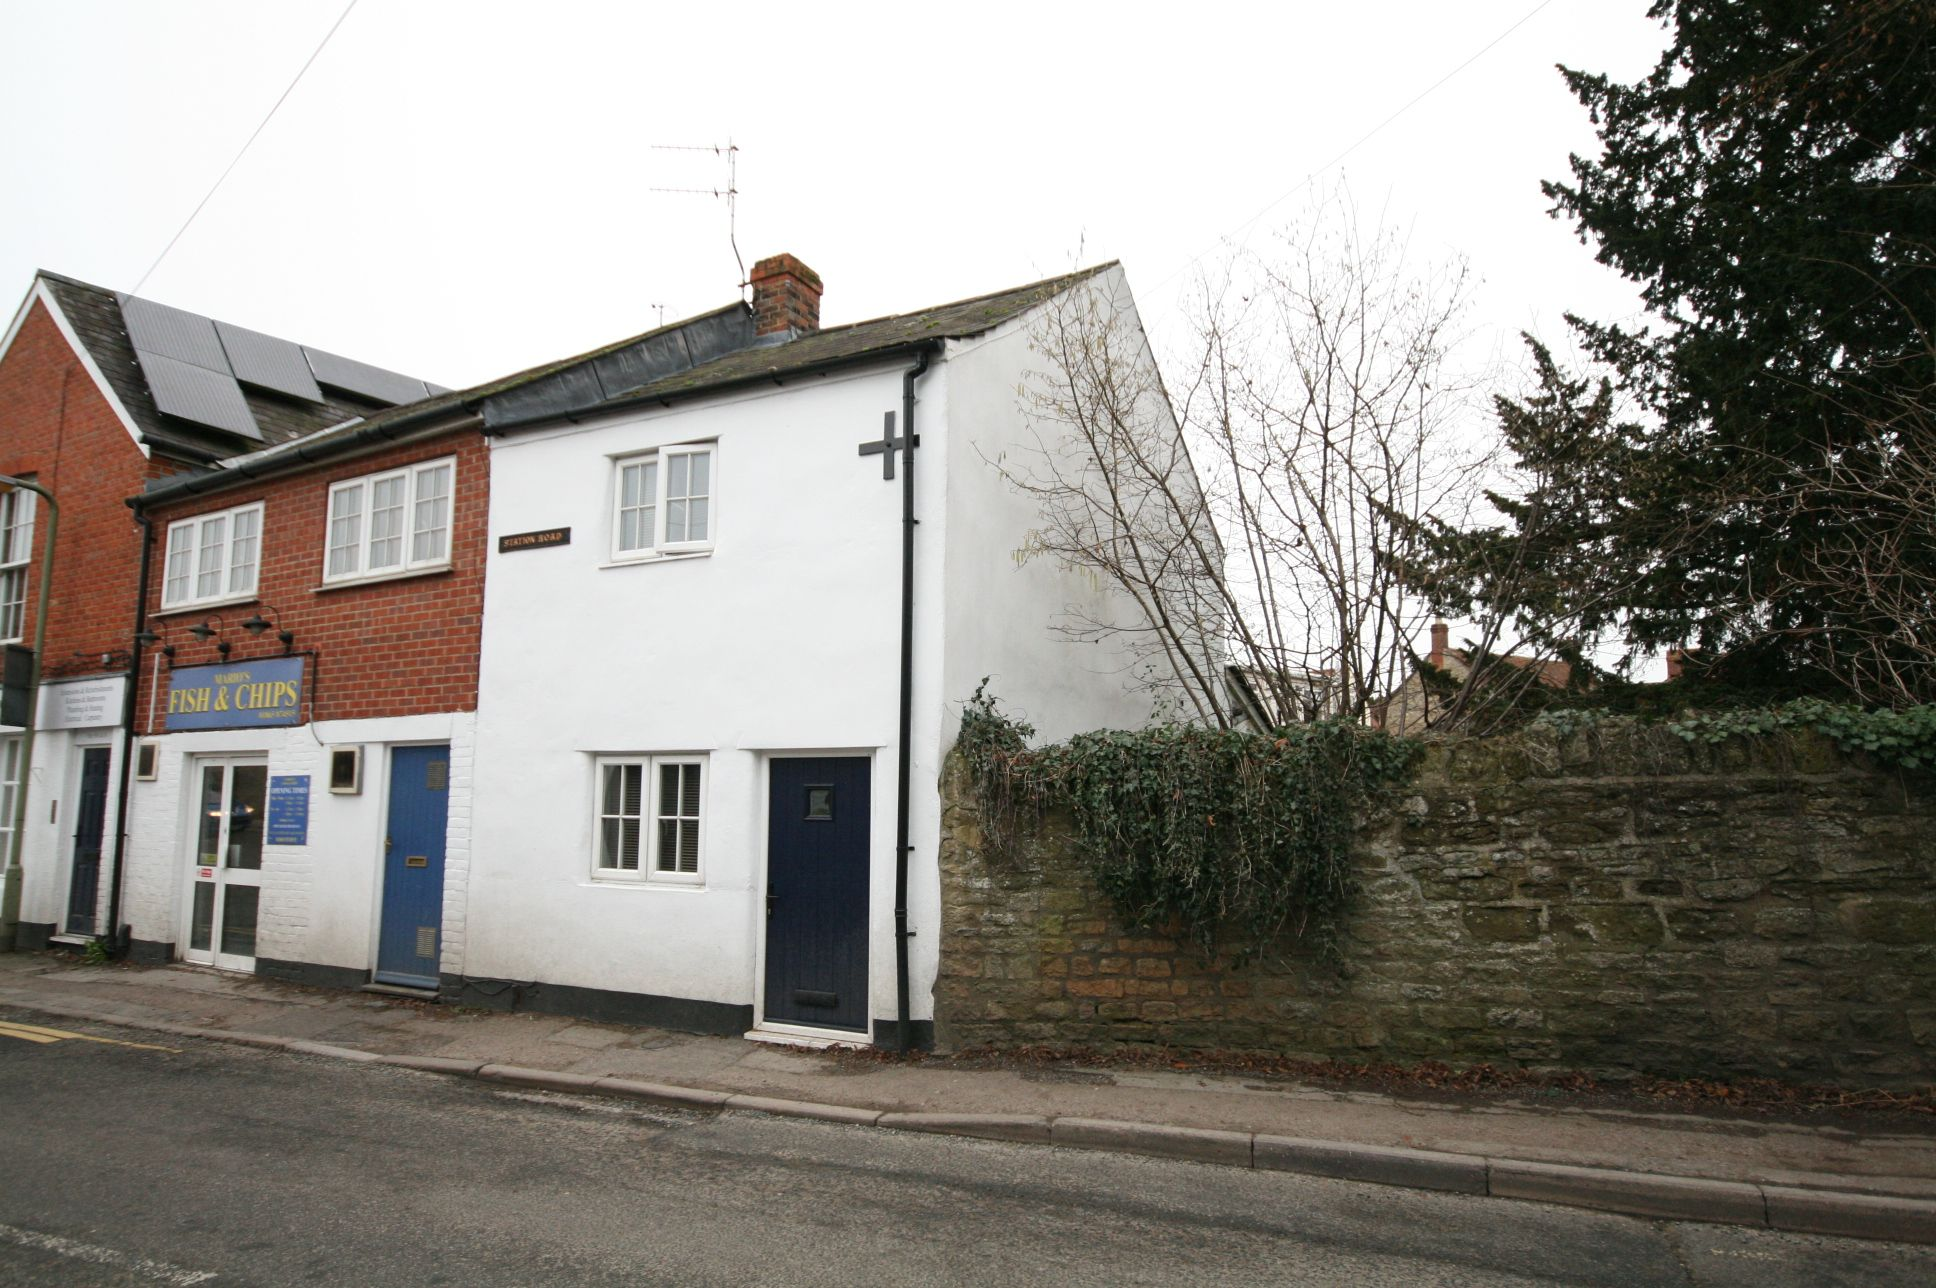 1 Bedroom Cottage House To Rent - Photograph 1